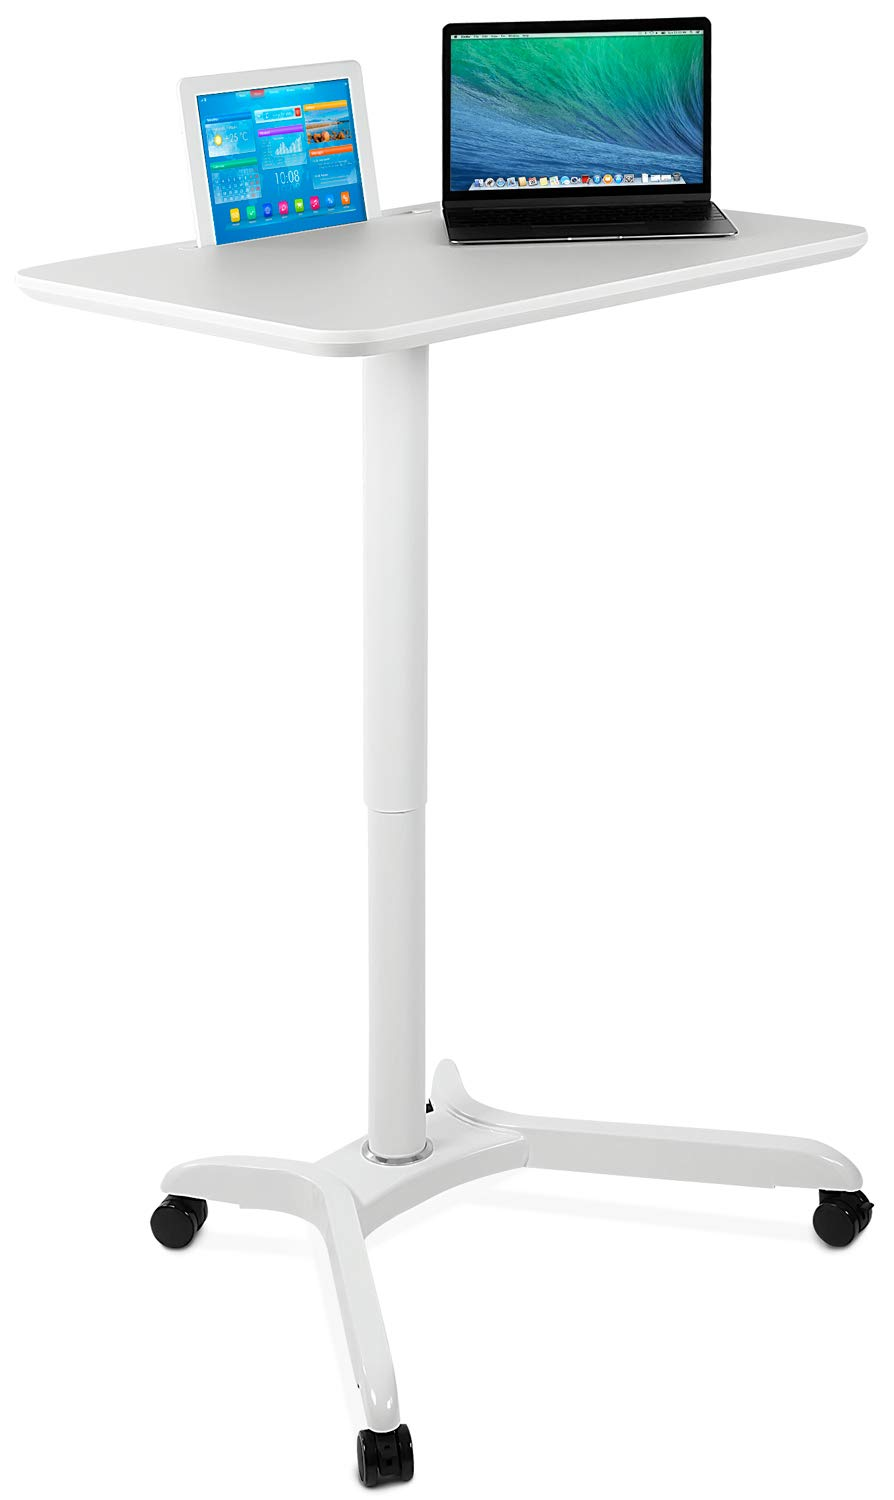 Mount-It! Standing Mobile Laptop Cart, Sit Stand Rolling Desk with Height Adjustable 31.1'' x 20.5'' Platform, Supports up to 17.6 lbs, White by Mount-It!